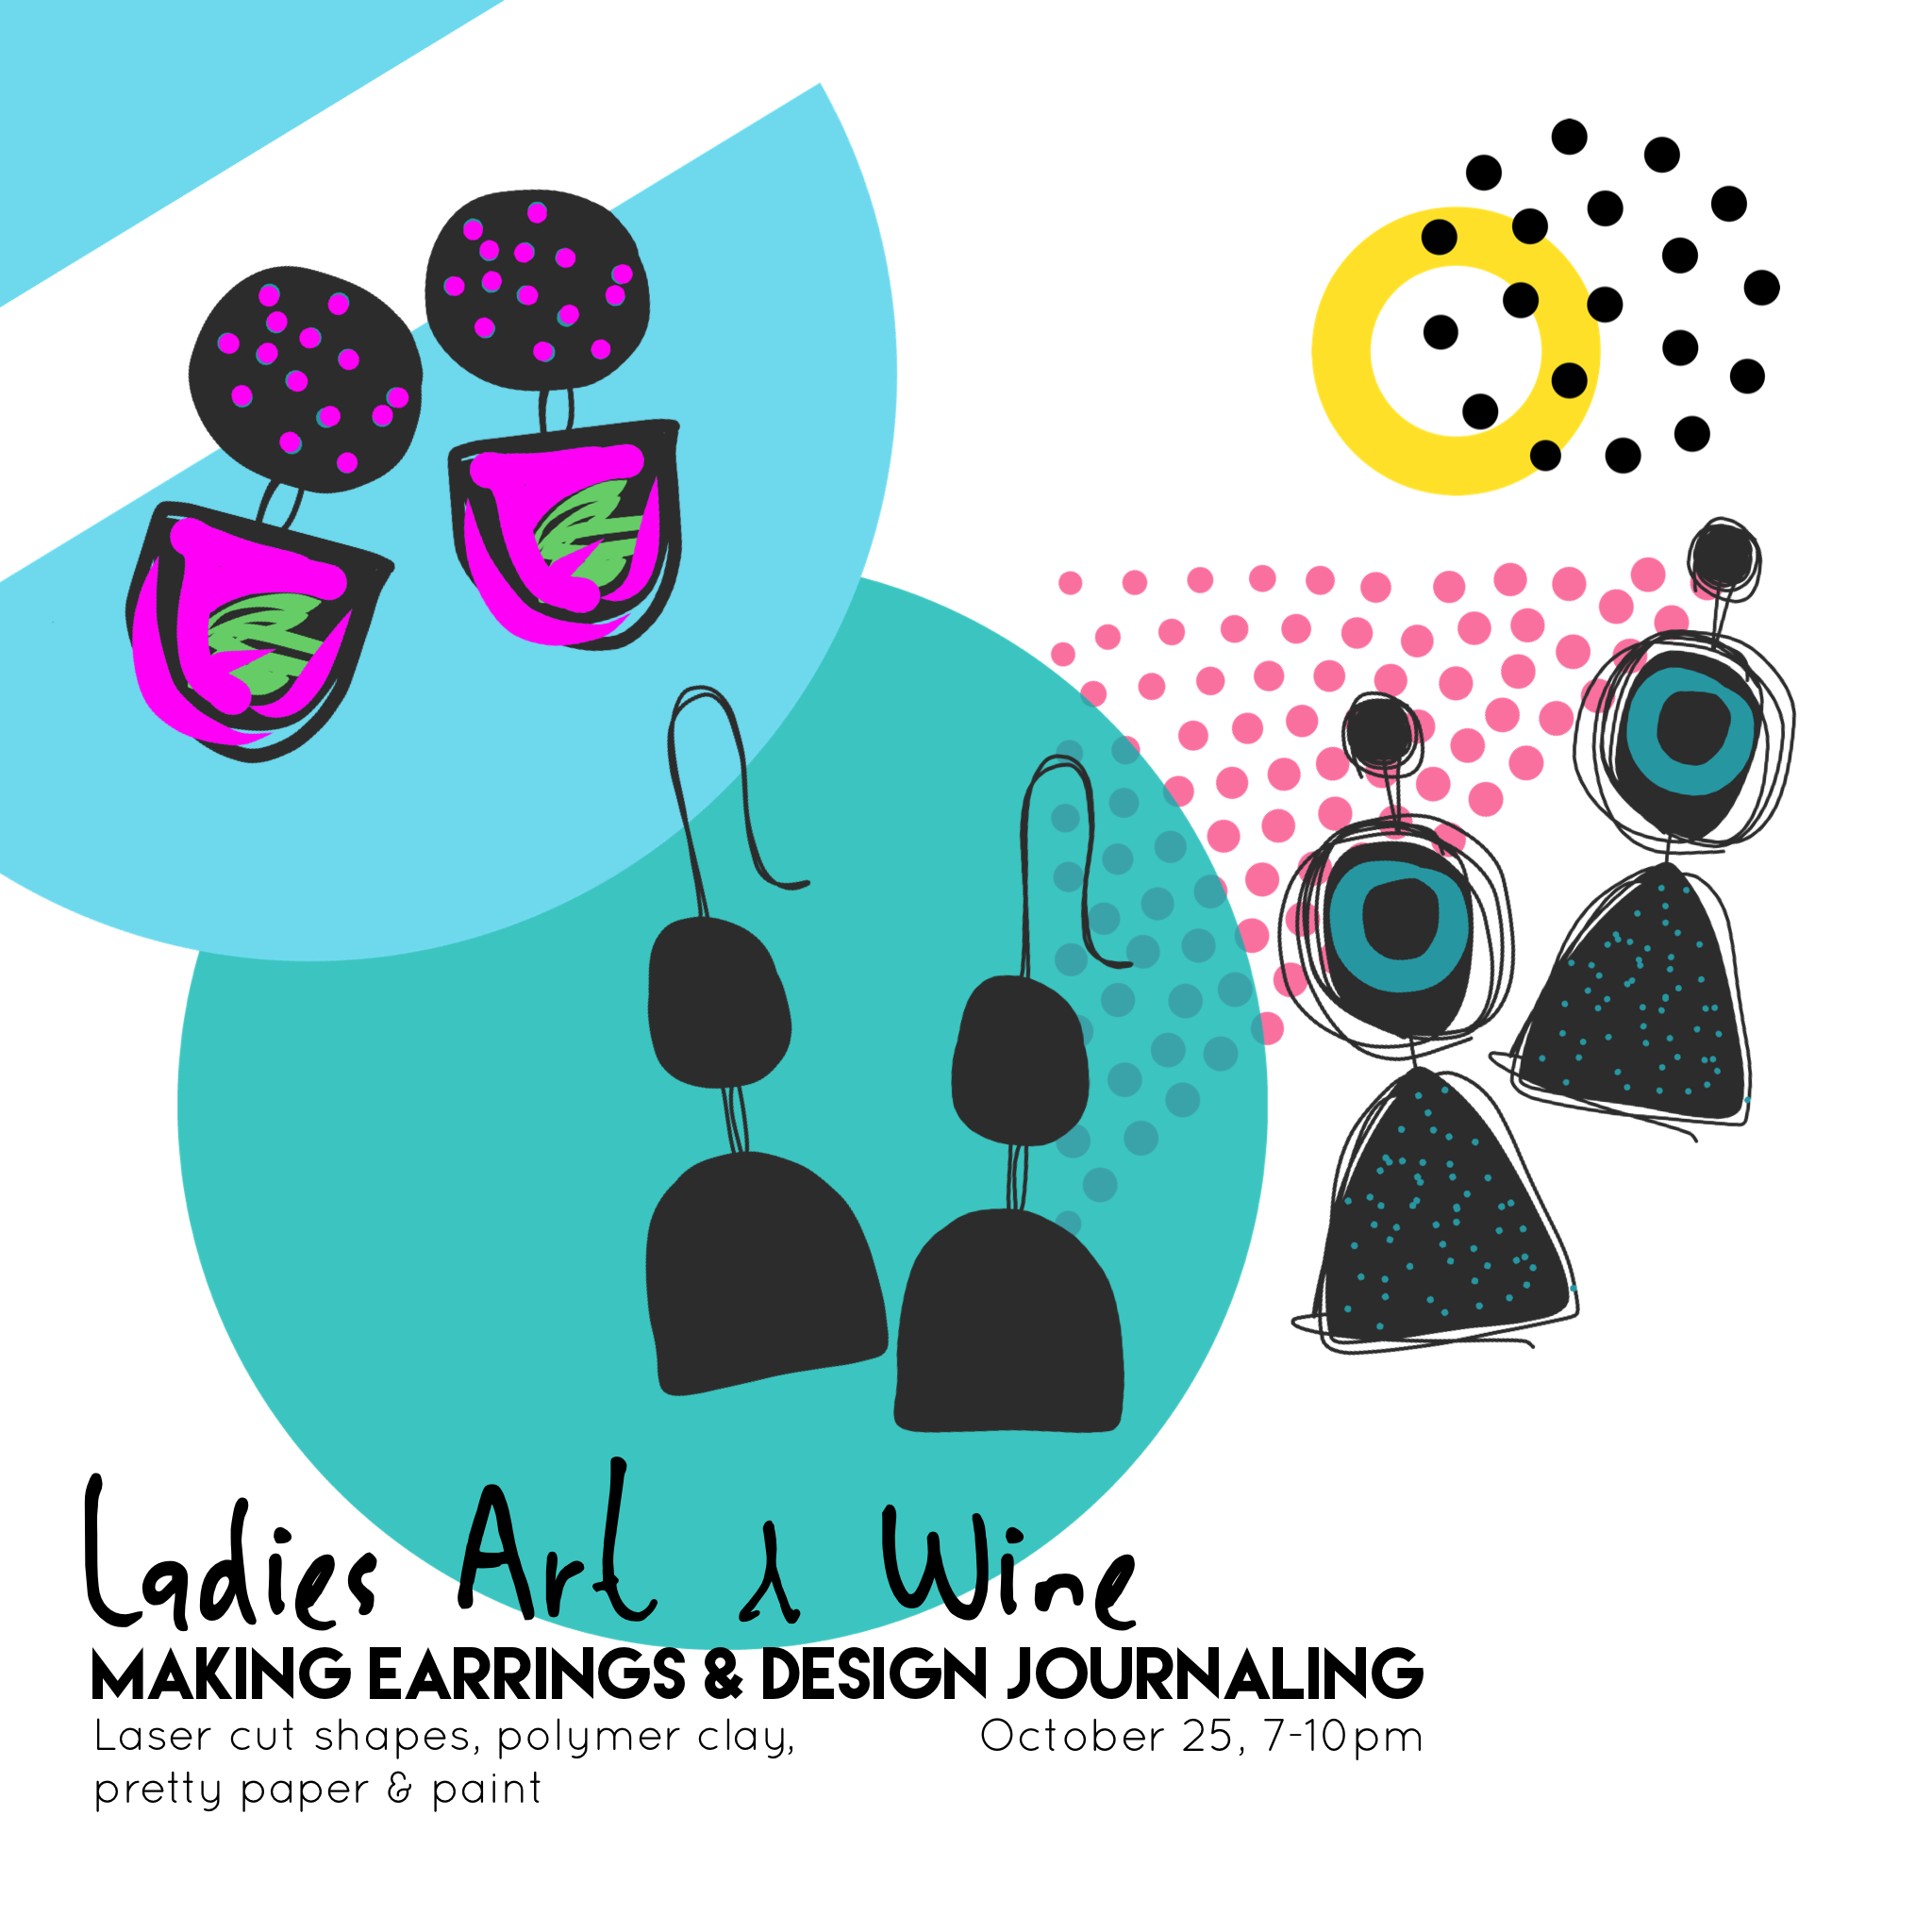 Ladies Art & Wine - Making Earrings and design journaling - Oct 25, 7-10pm